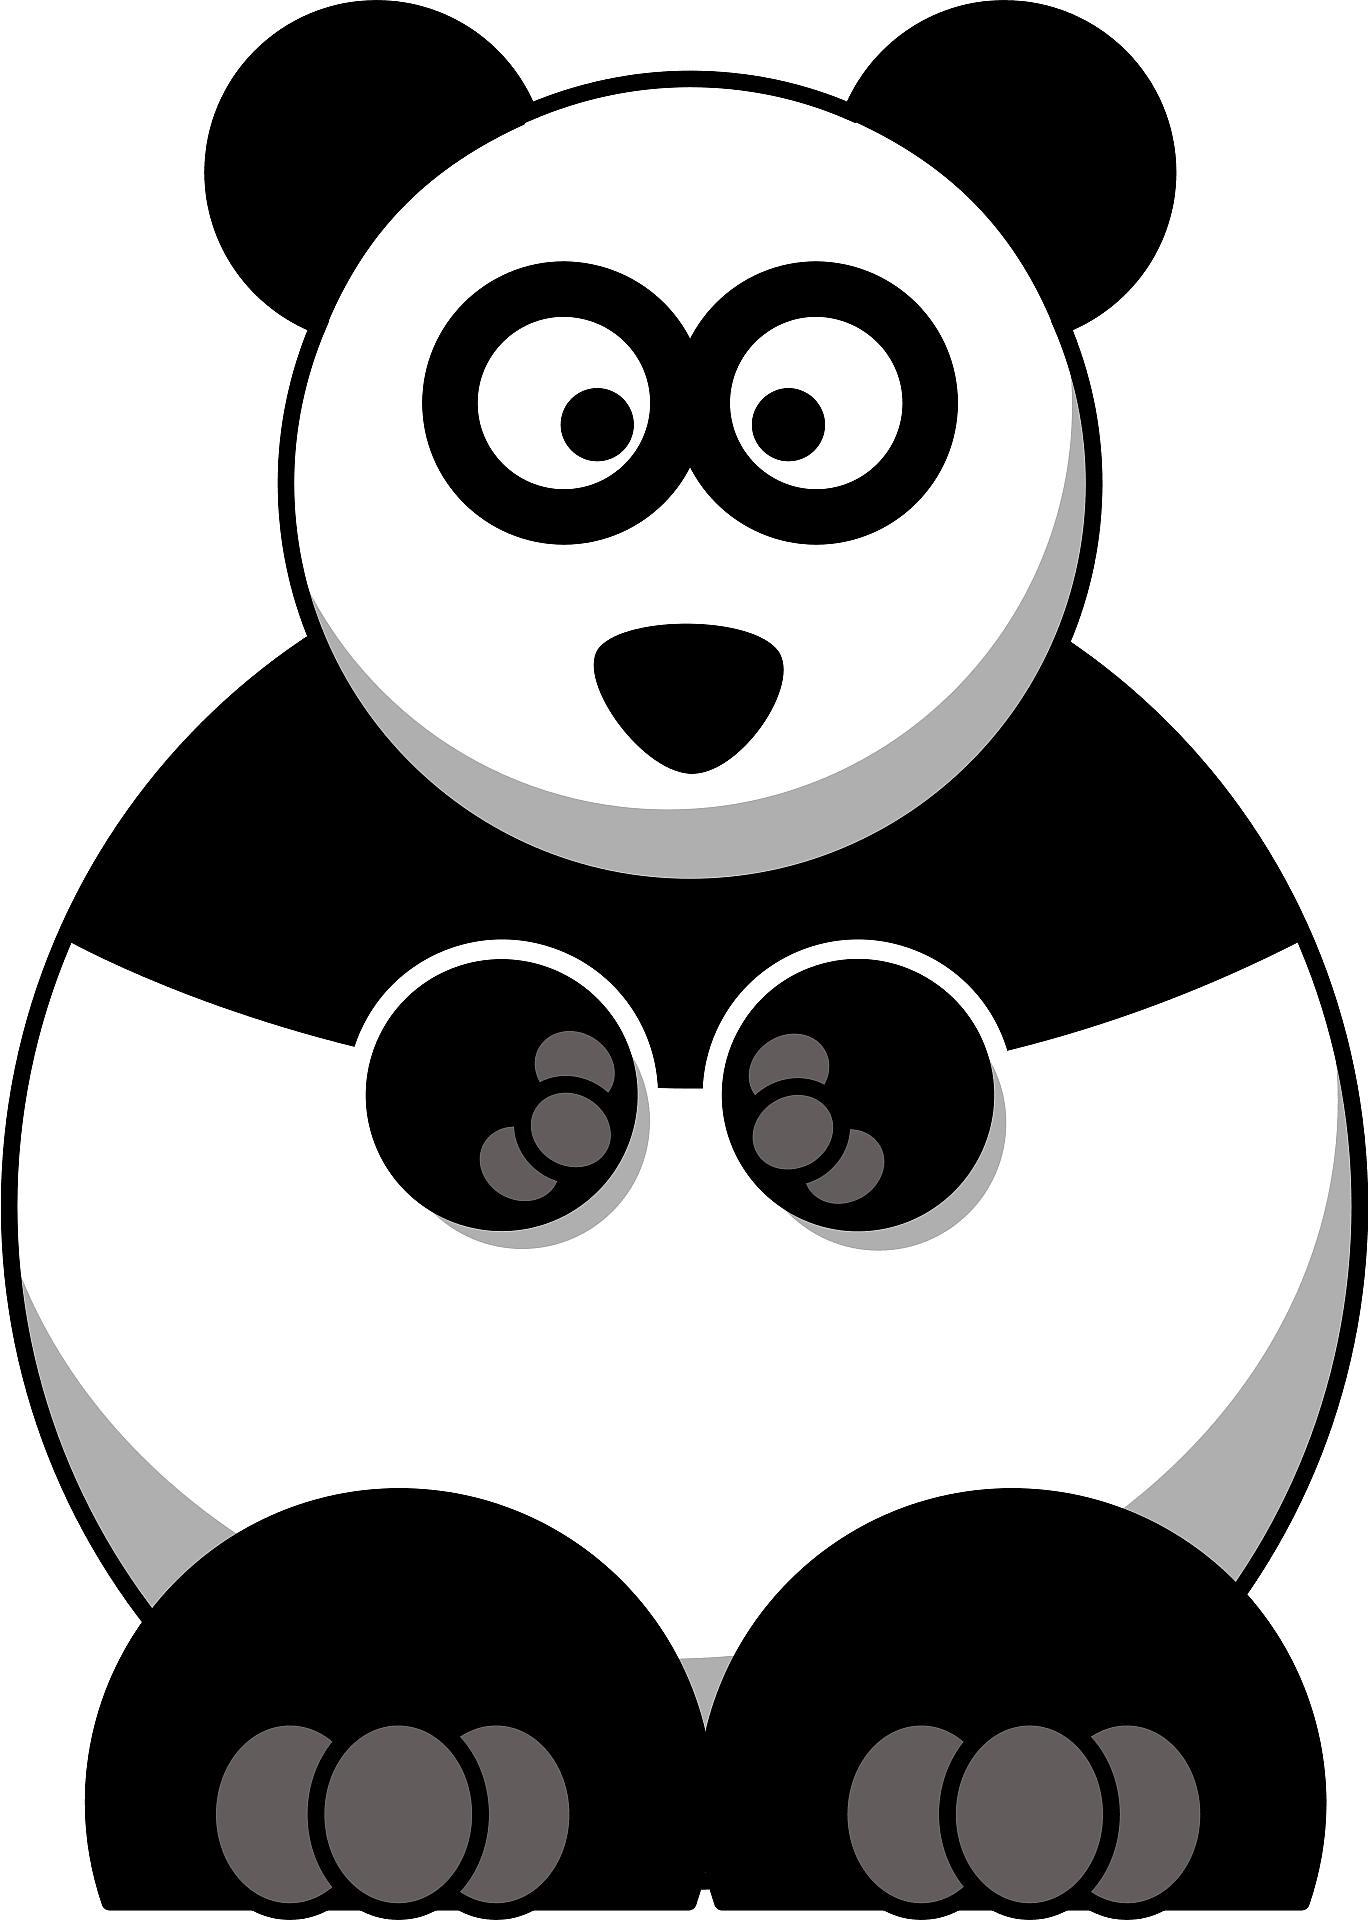 Panda PNG Clip Art Transparent Image   Gallery Yopriceville - High-Quality  Images and Transparent PNG Free Clipart